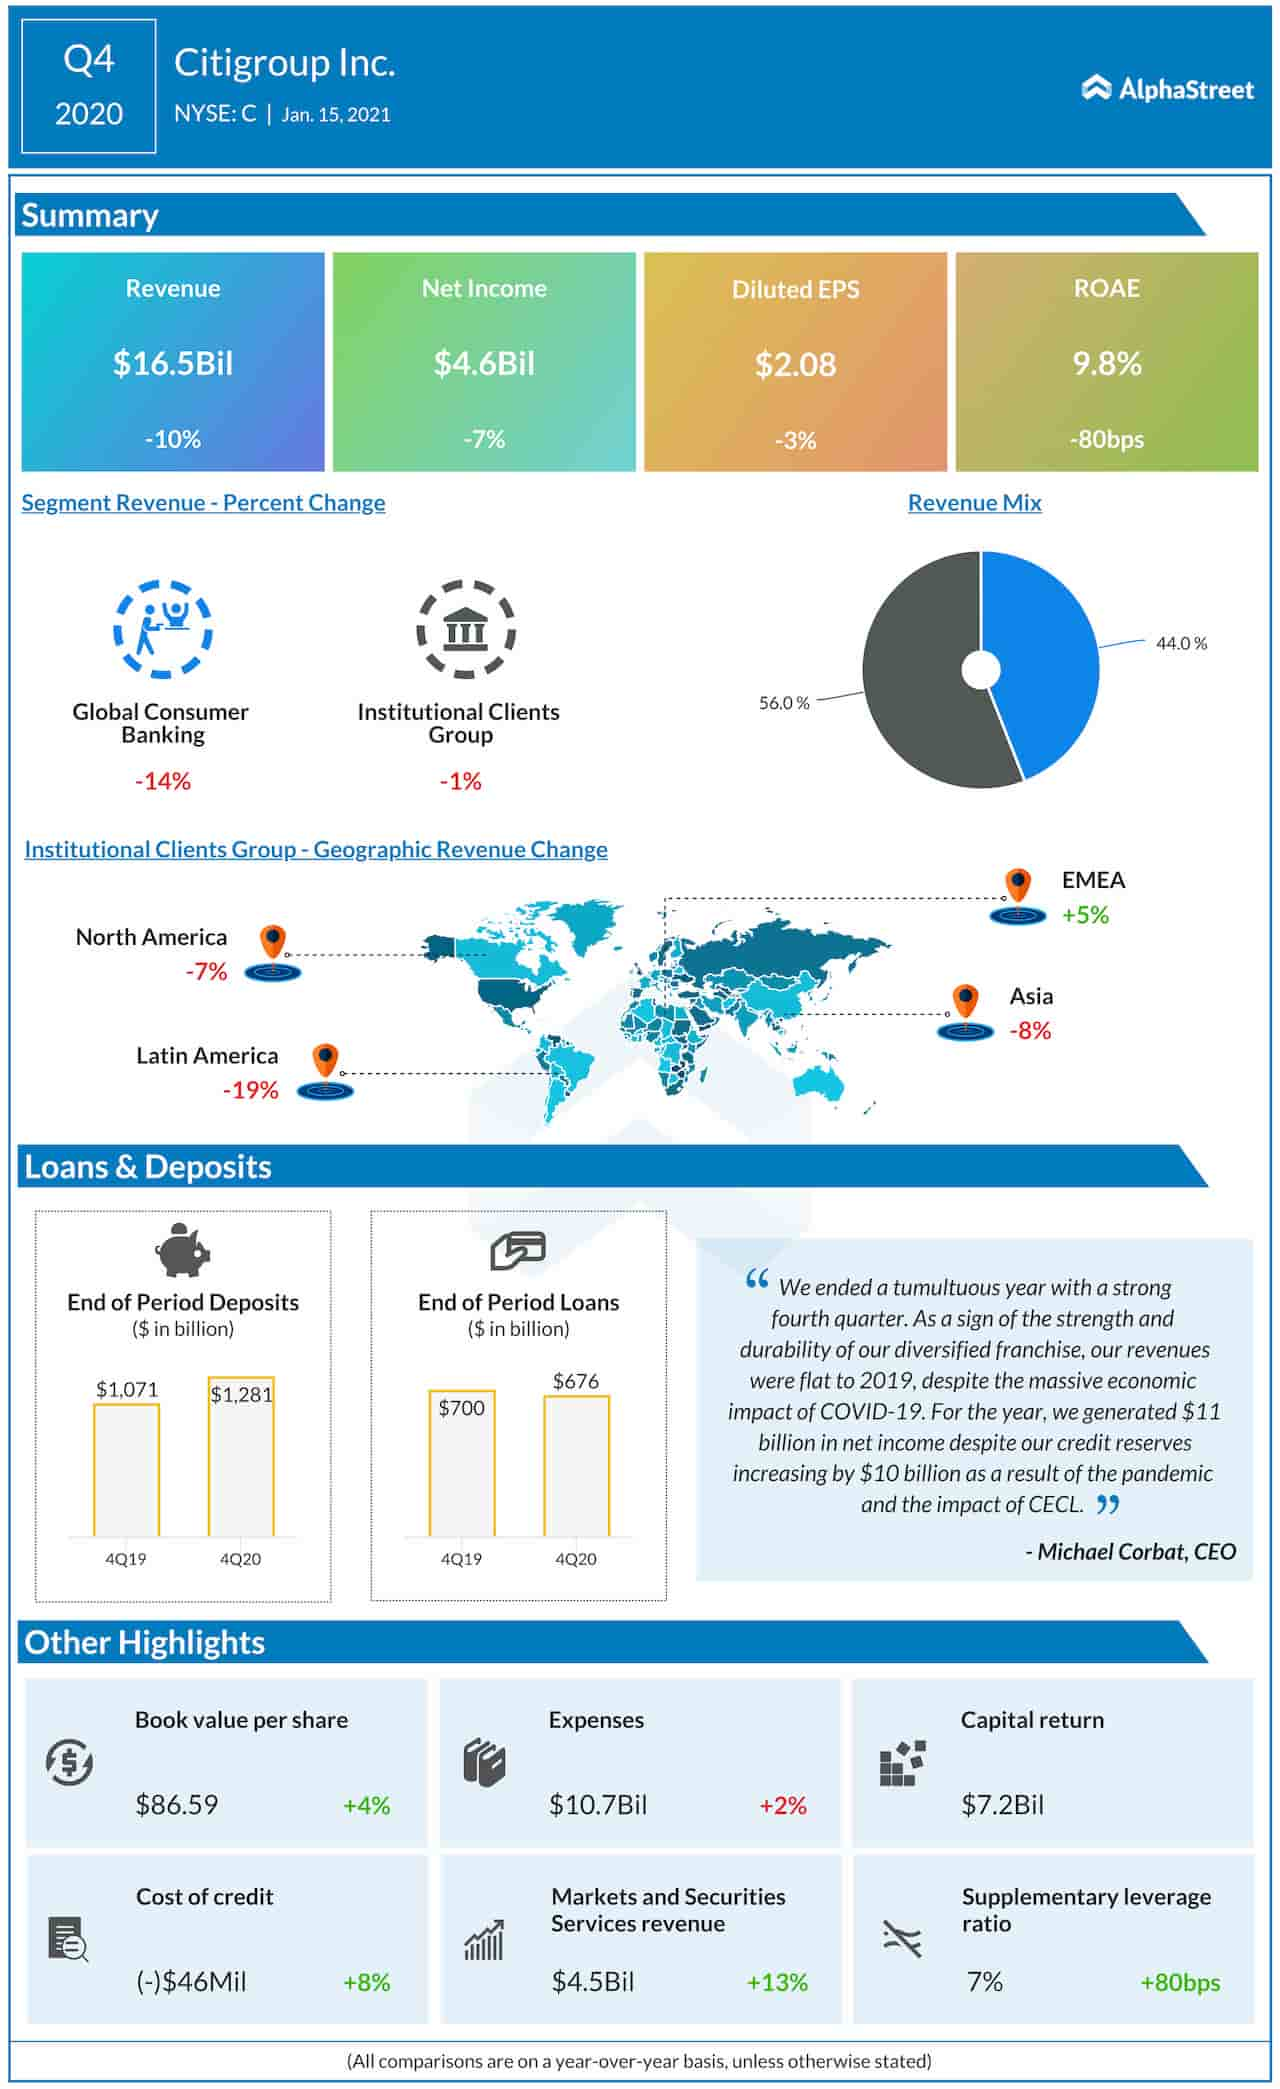 Citigroup Q4 2020 earnings infographic